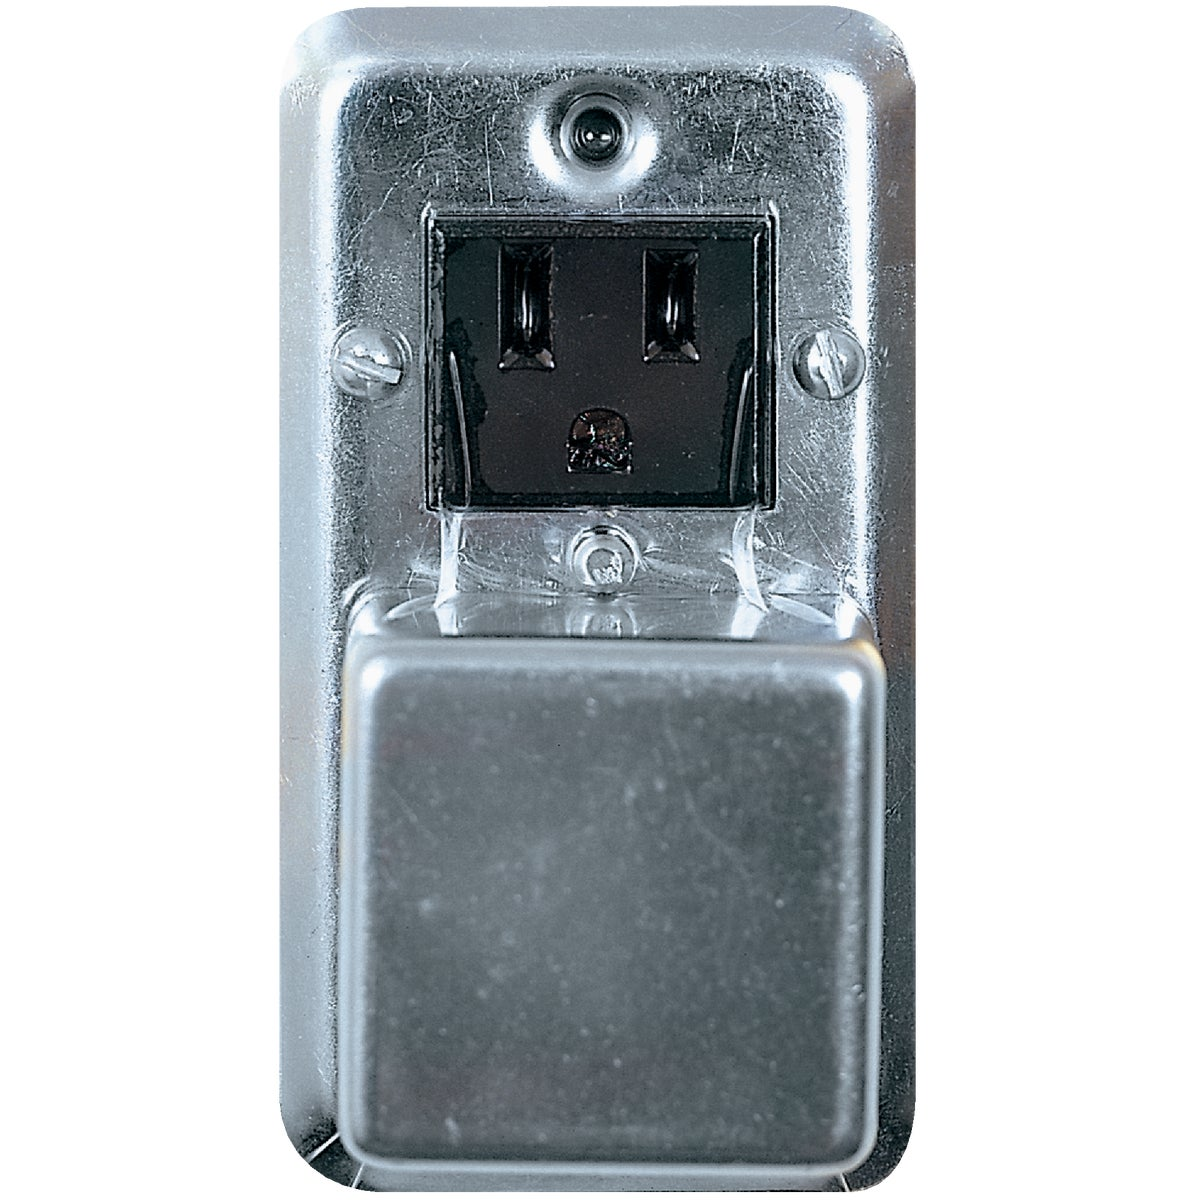 RECEPTACLE/FUSE HOLDER - BPSRU by Bussmann Cooper